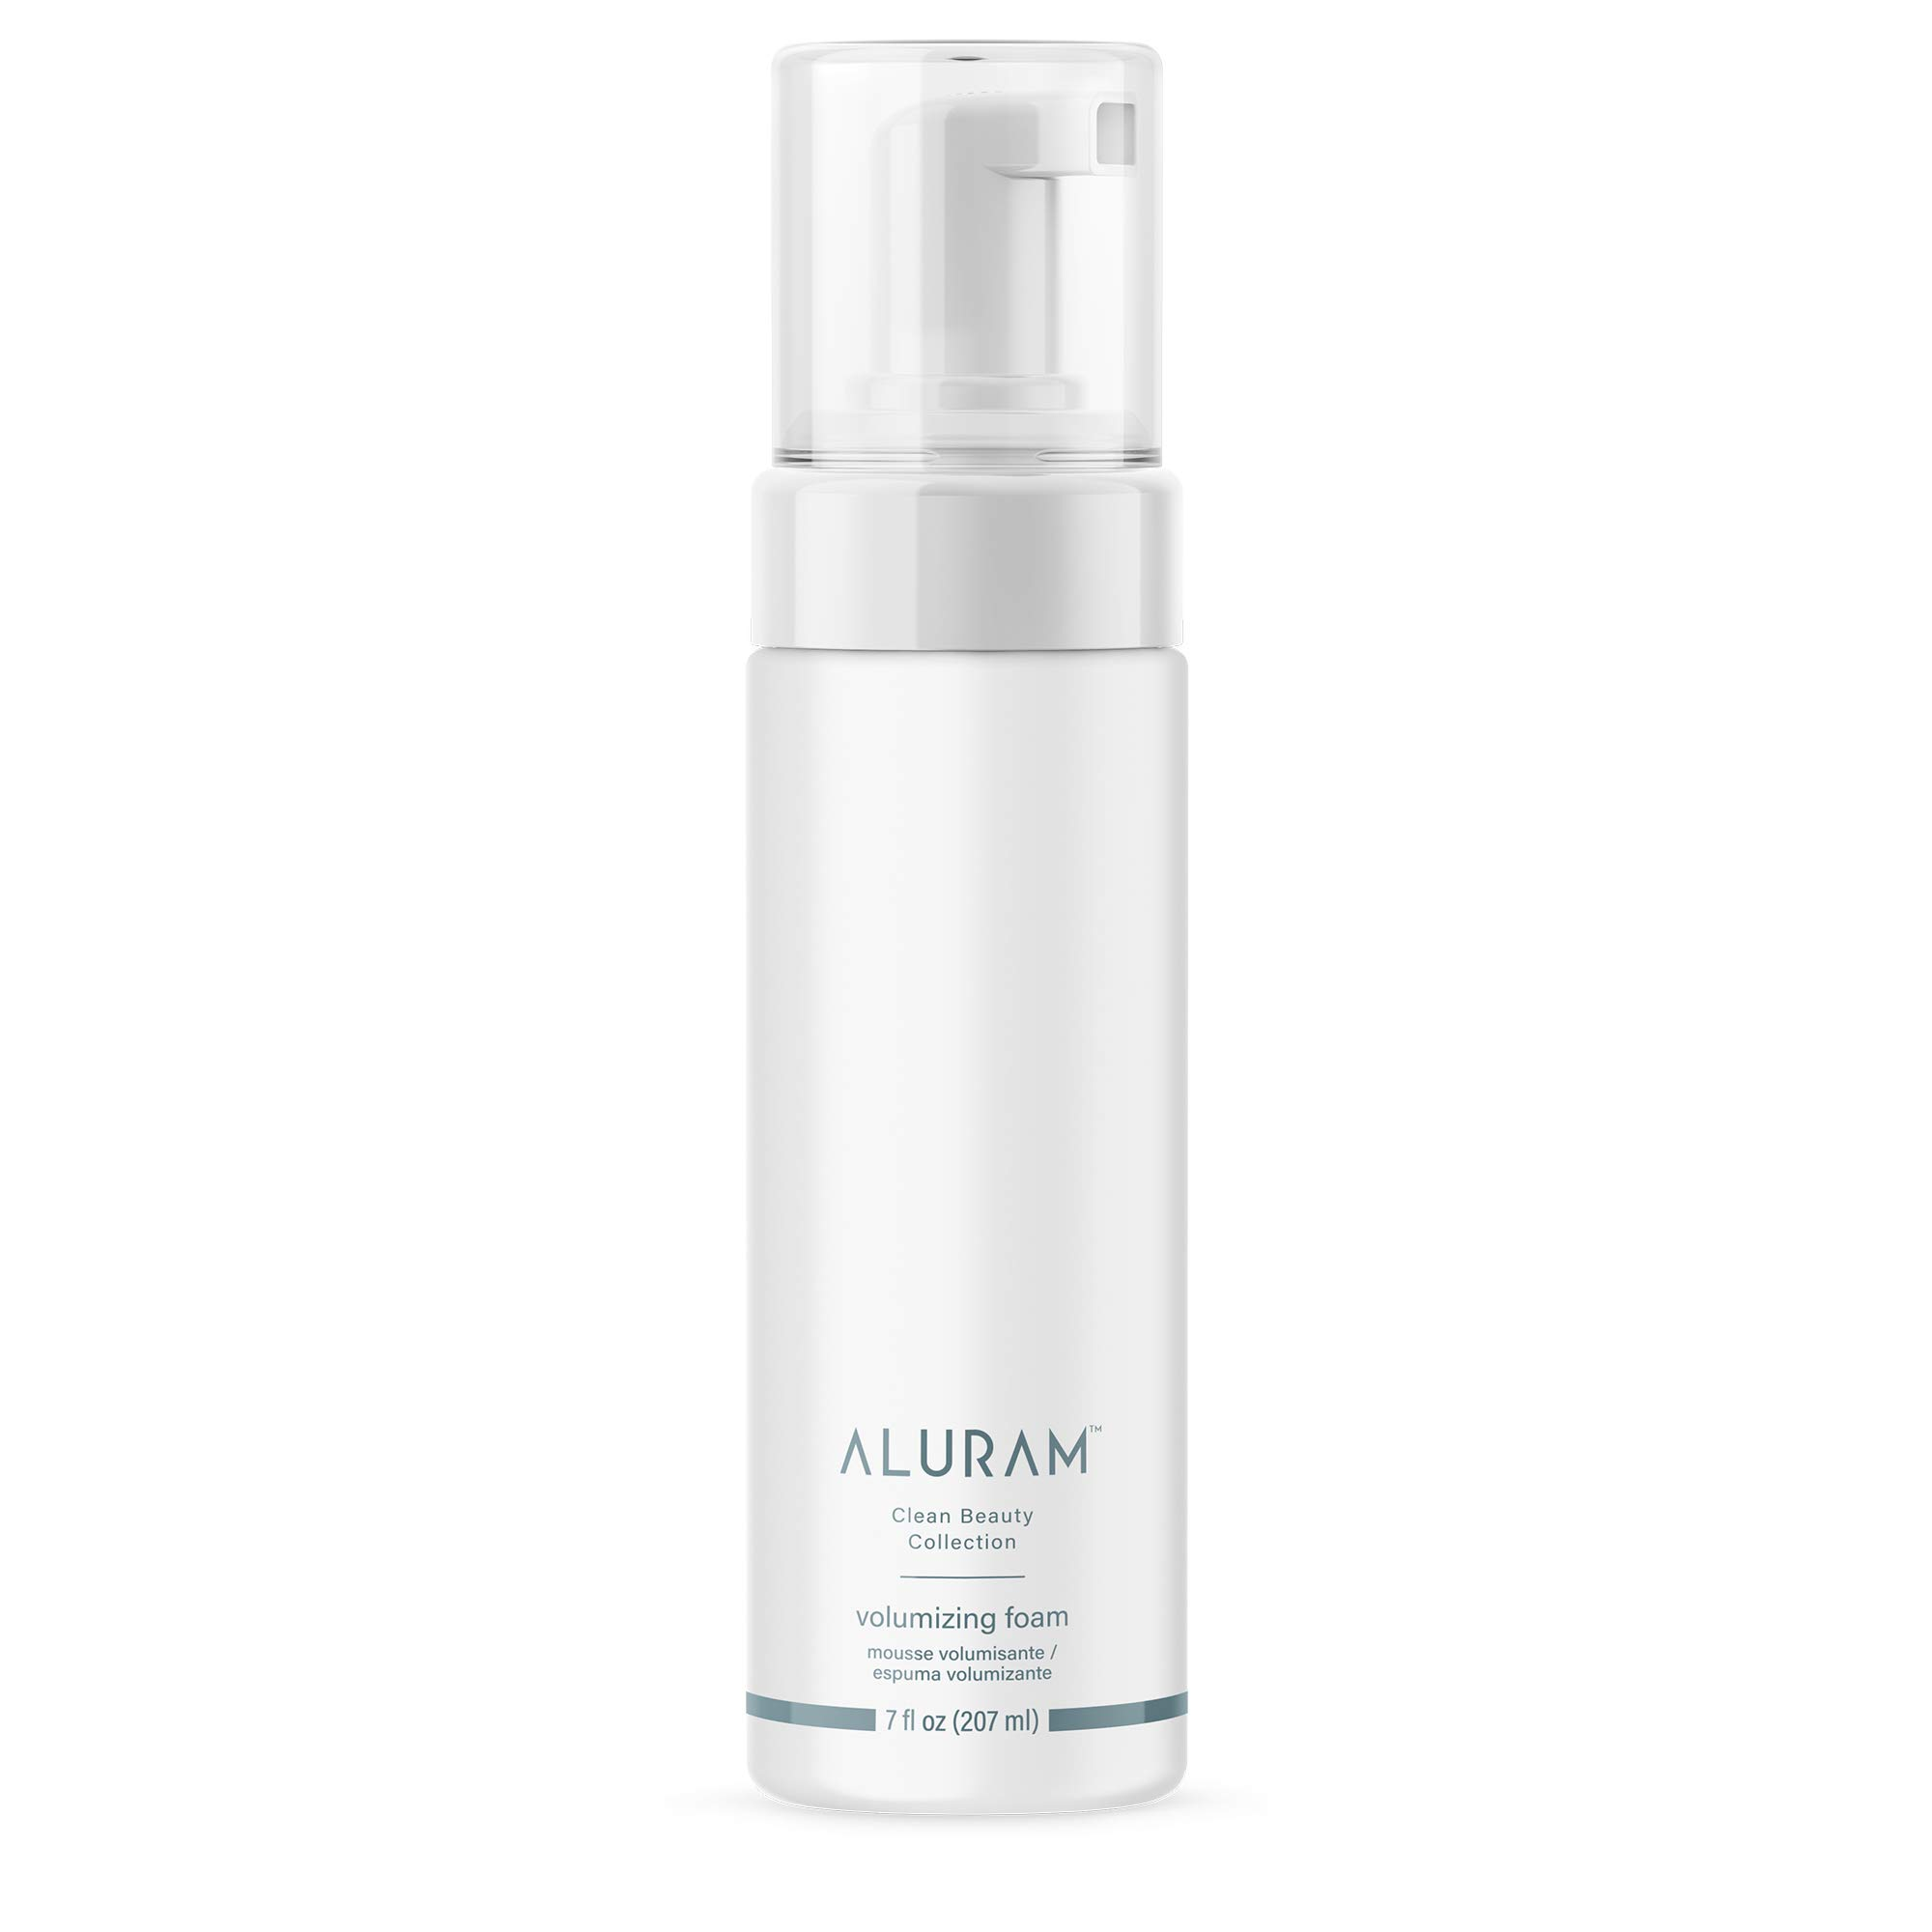 Aluram Coconut Water Based Hair Volumizing Foam | Defines Curls, Controls Frizz, Adds Shine (7 Fl Oz) Infused with Algae Extract & Biotin | Clean Beauty - Sulfate & Paraben Free